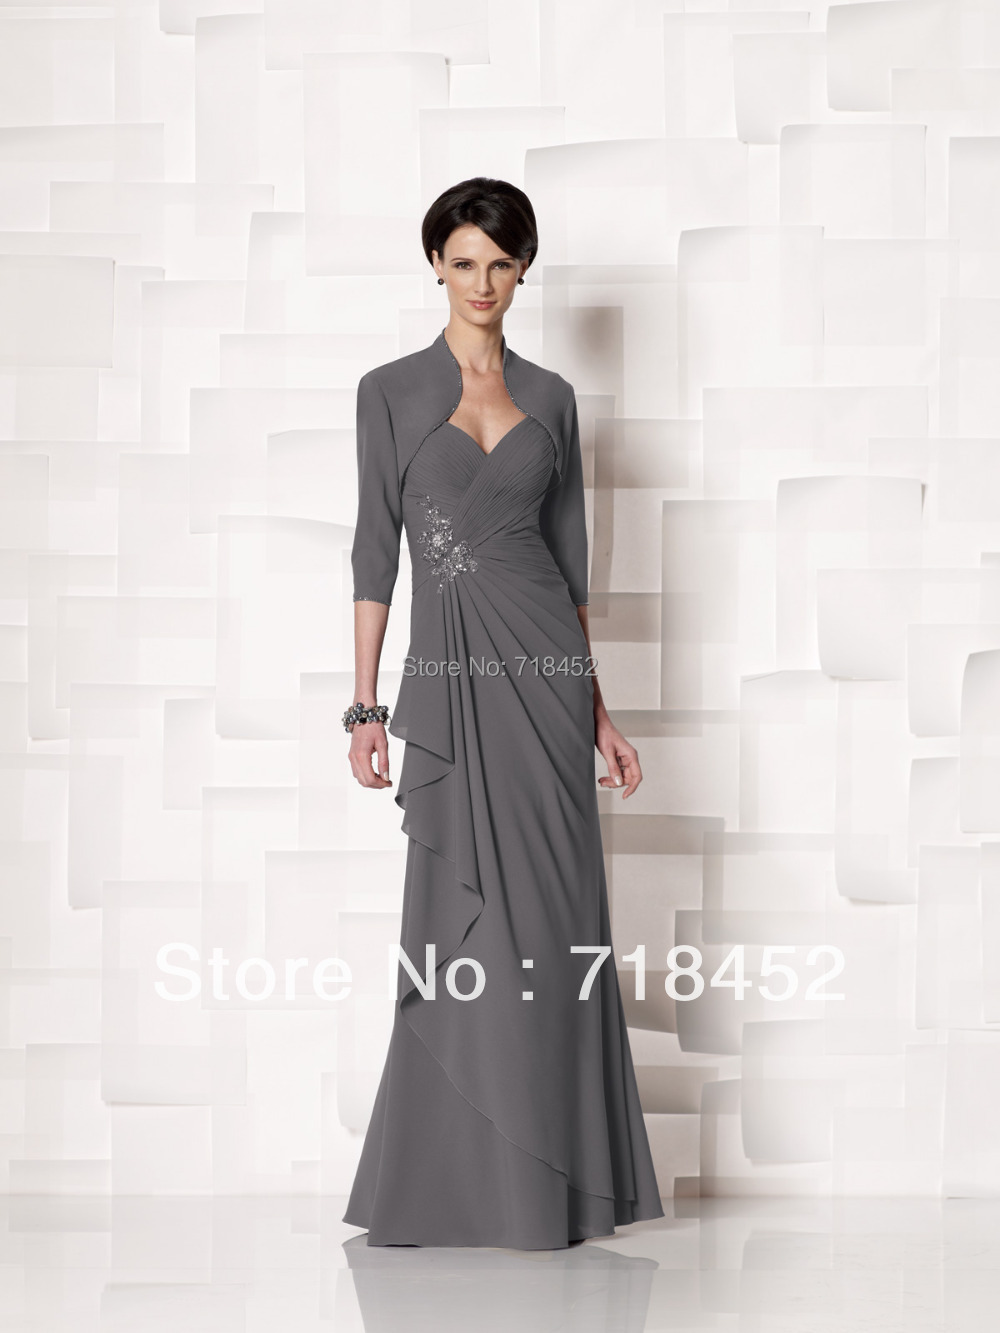 Grey chiffon mother of the bride pant suit dress luxury for Suit dresses for weddings